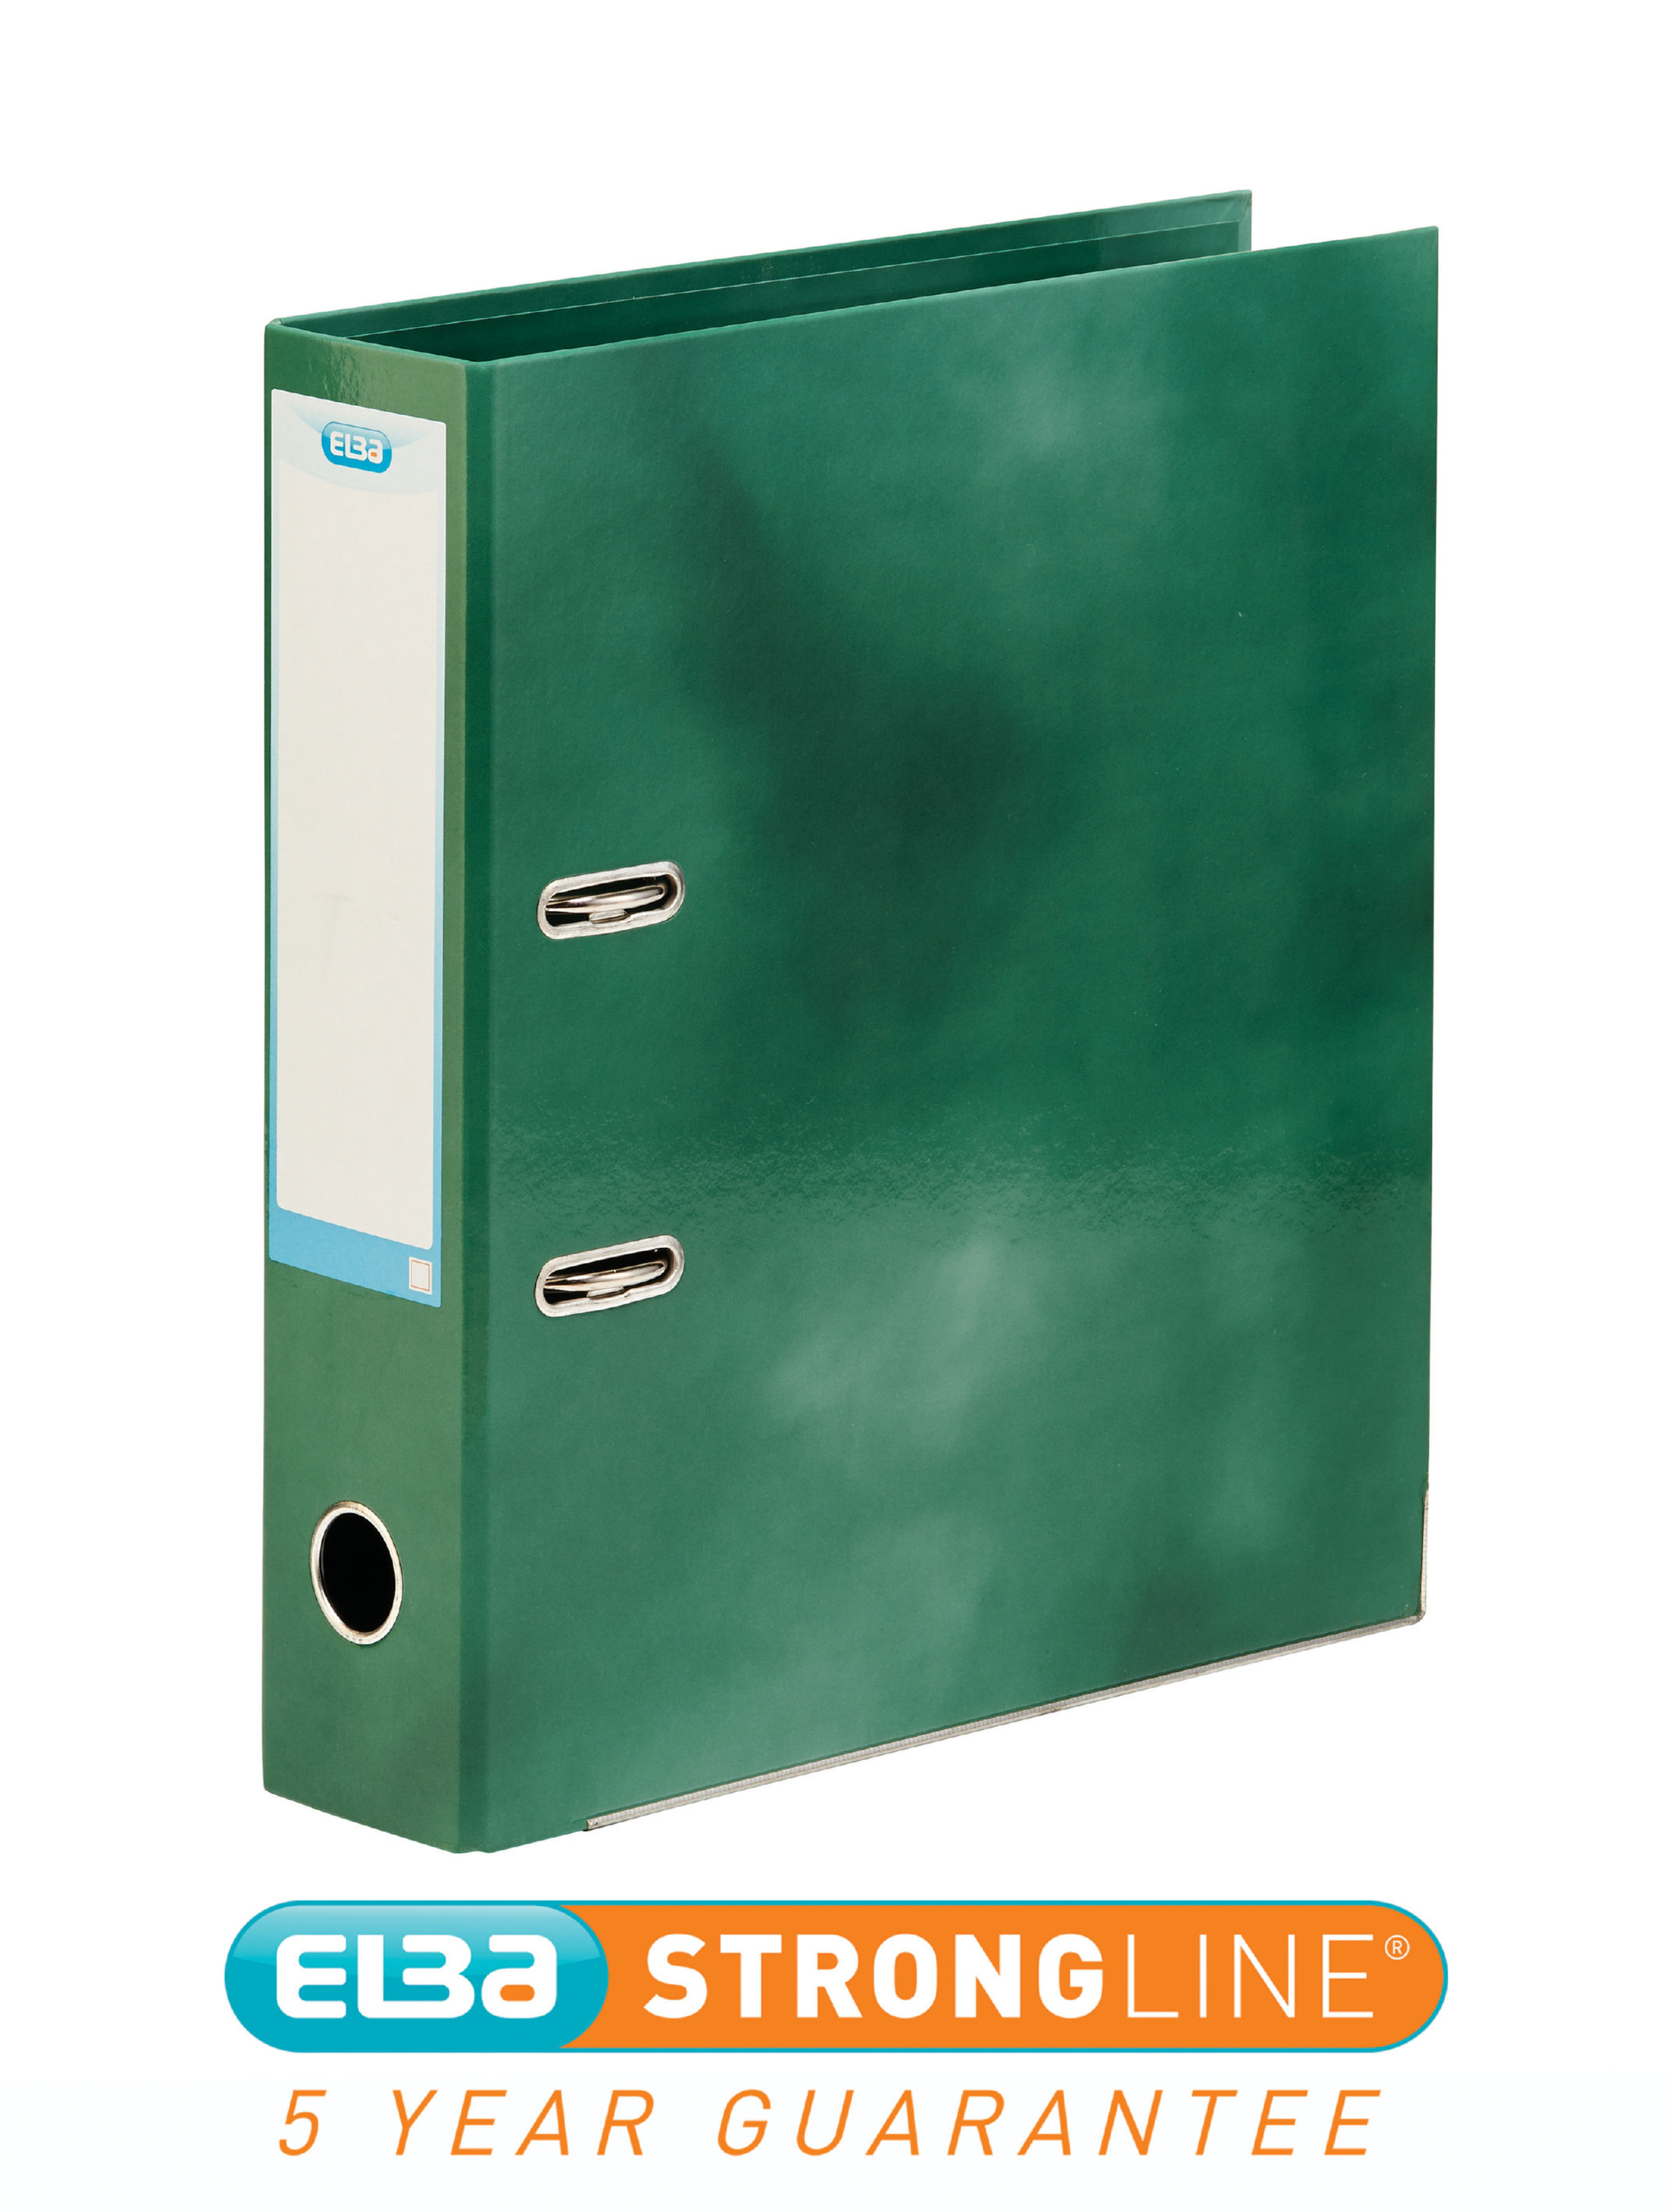 Elba Lever Arch File Laminated Gloss Finish 70mm Capacity A4+ Green Ref 400021005